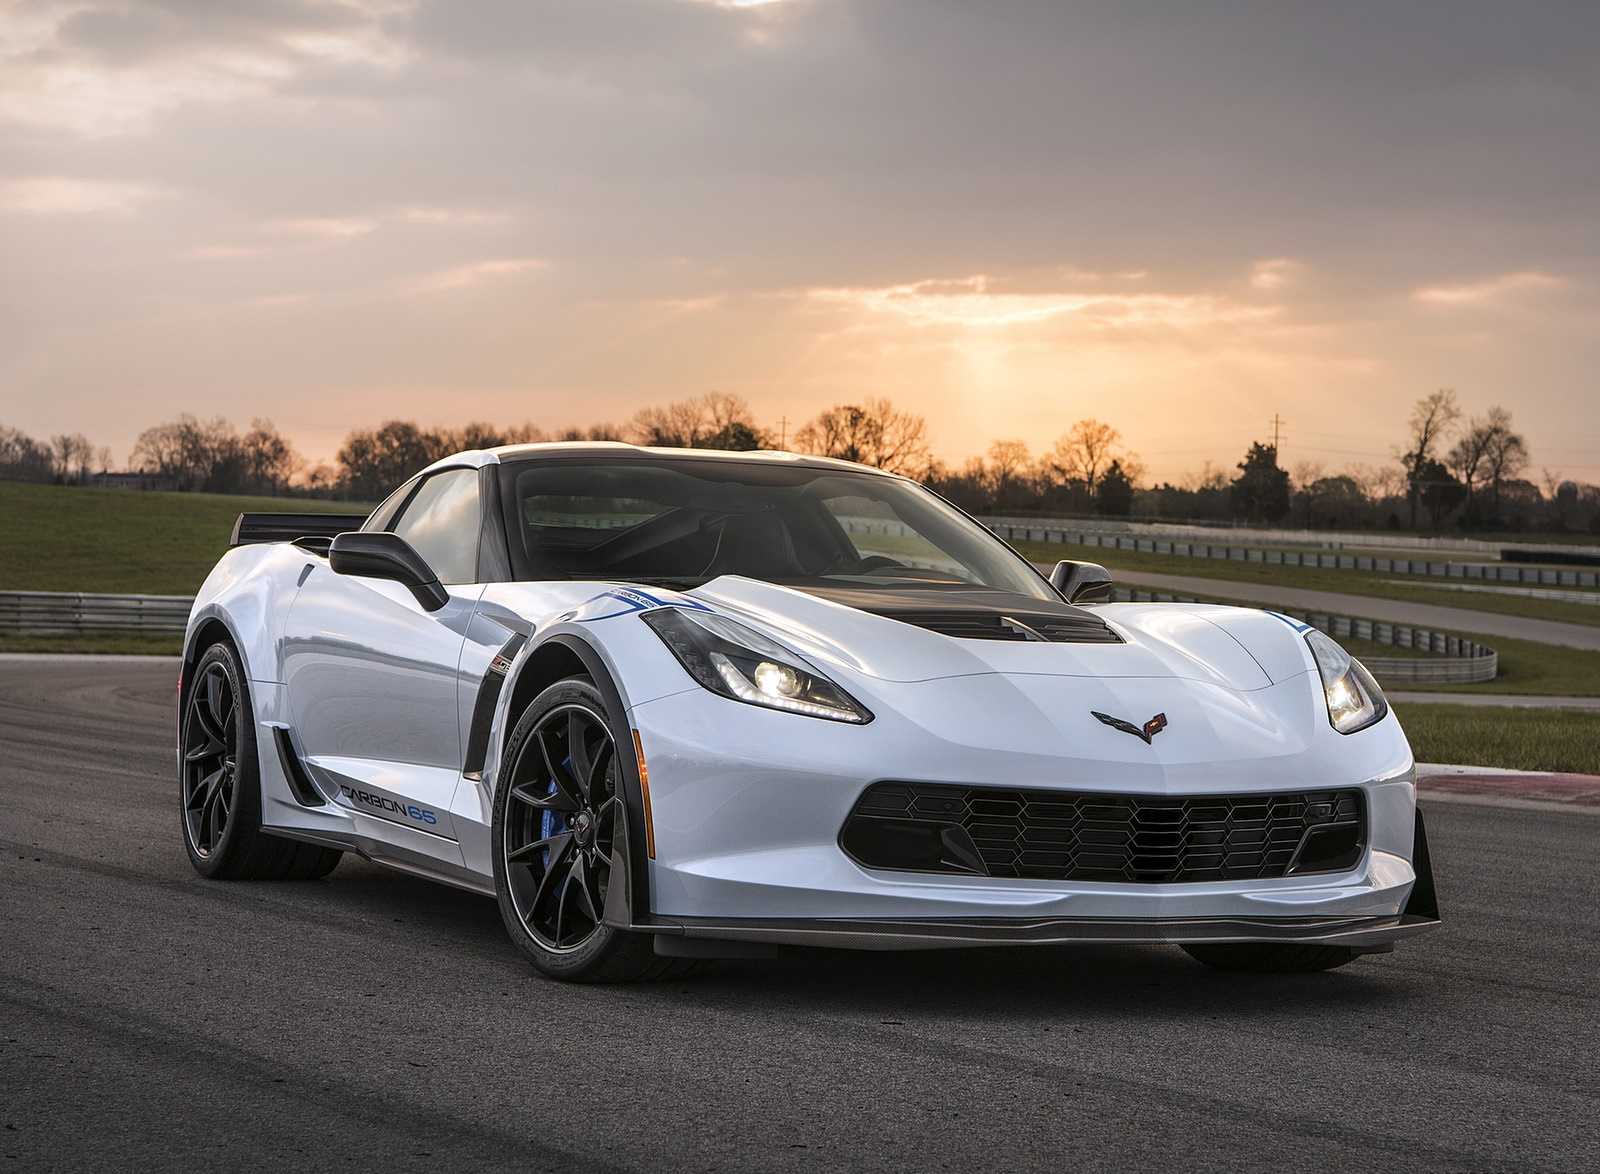 2018 Chevrolet Corvette Carbon 65 Edition Z06 3LZ Coupe Front Three-Quarter Wallpapers (1)